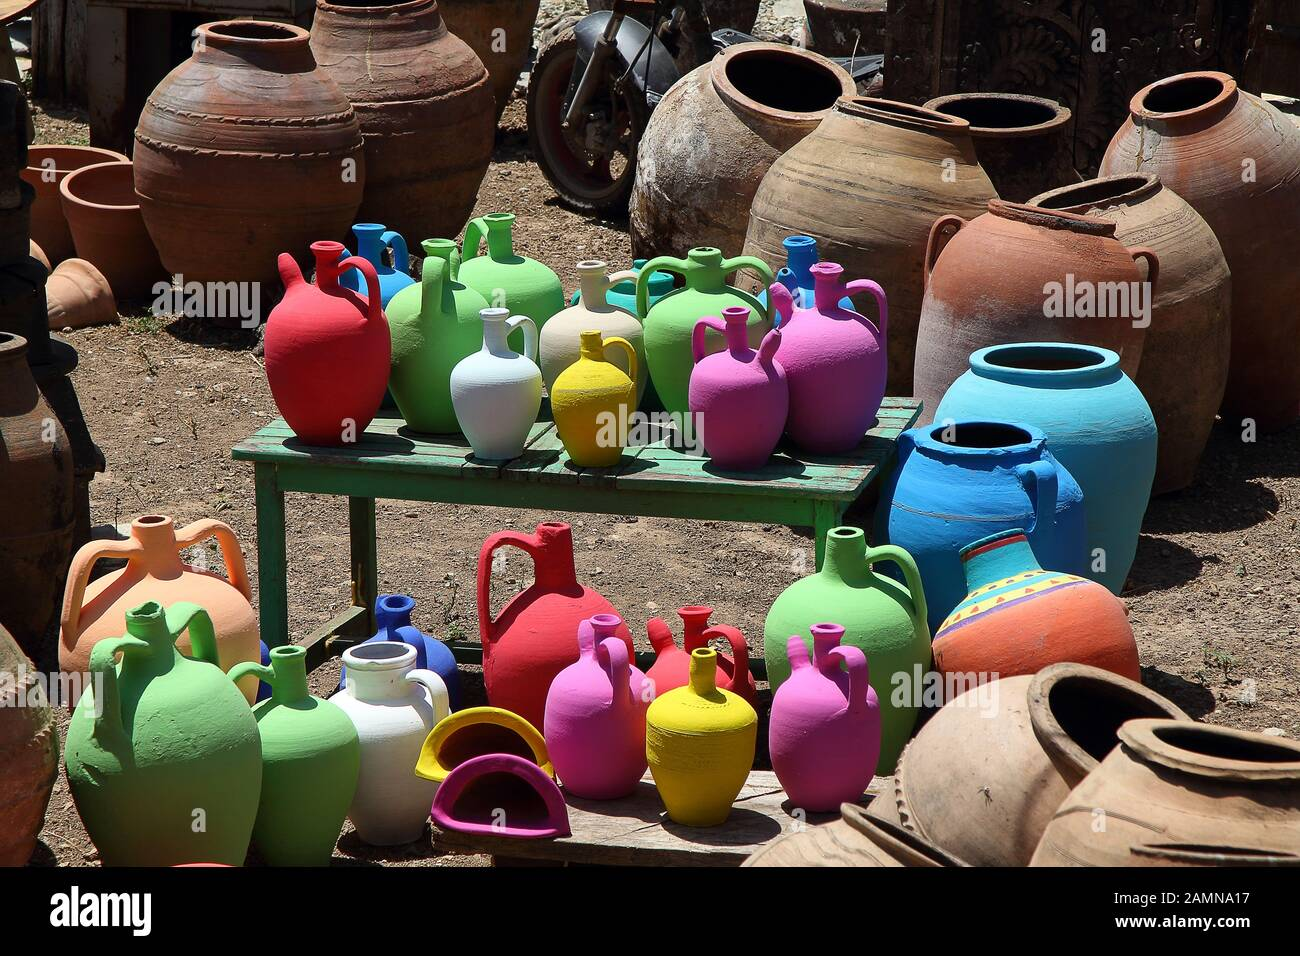 Clay Pots Of Different Color In Pile Background Texture Stock Photo Alamy